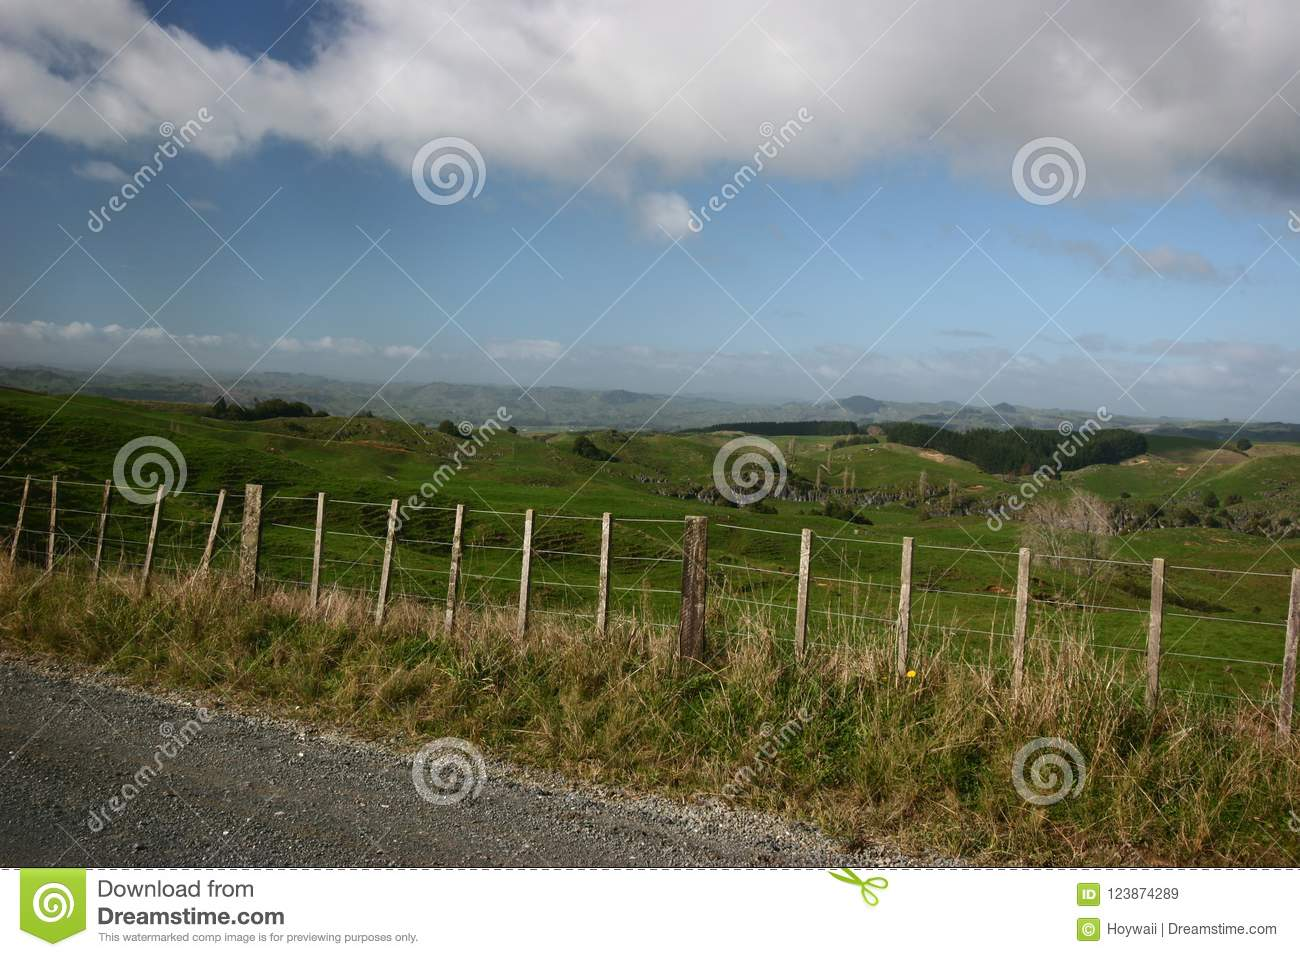 Fenced Off Grazing Flat Land Along A Dirt Road Stock Image - Image ...